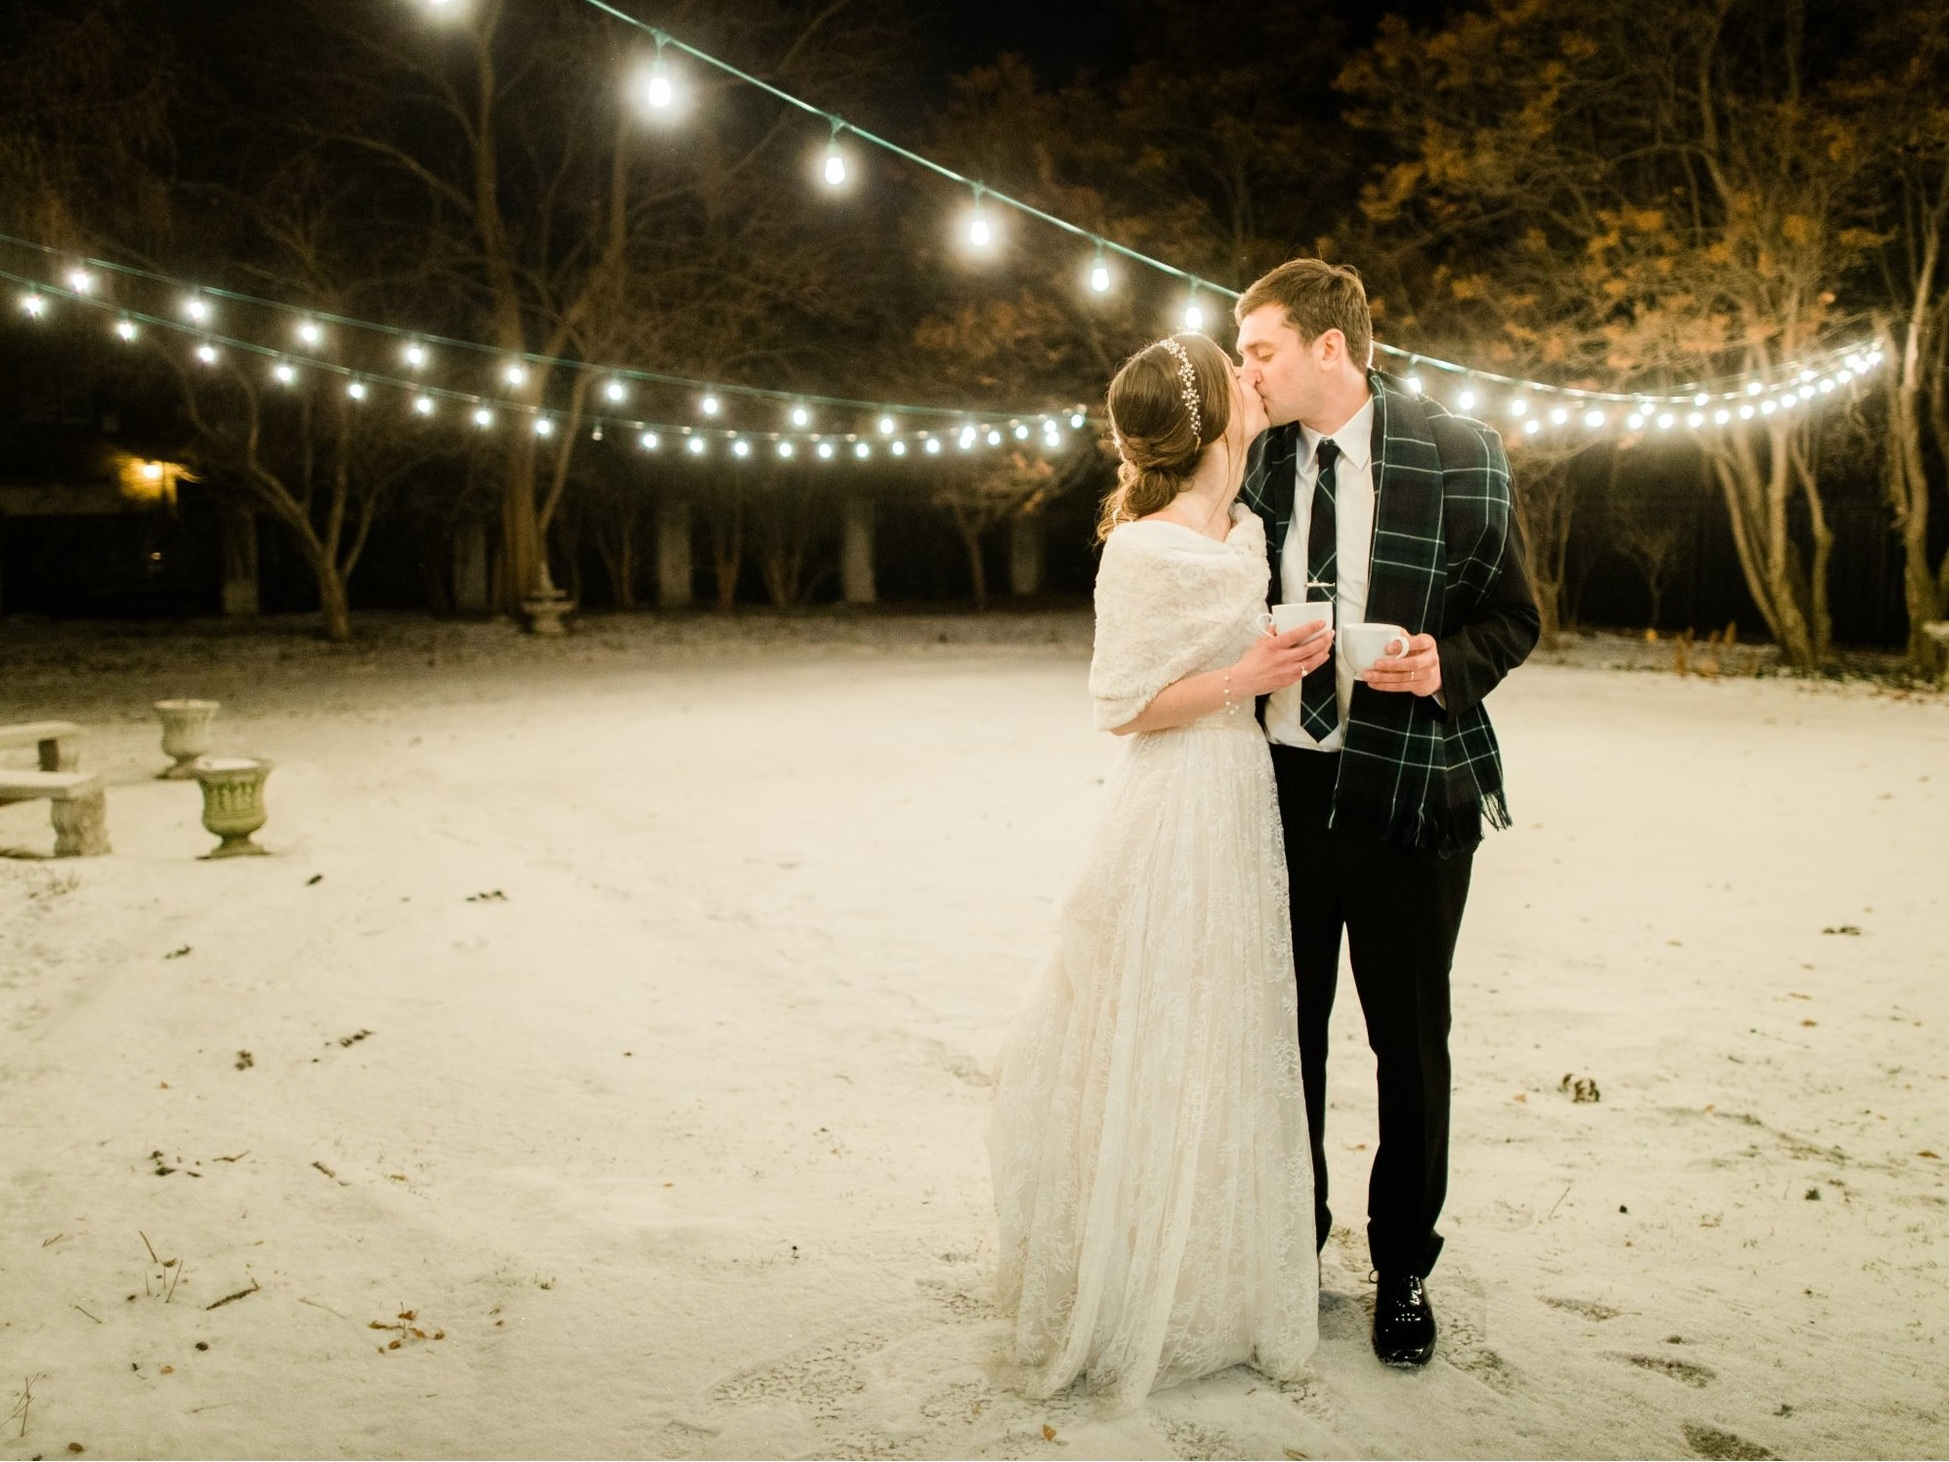 Scottish+Winter+Wedding+at+the+Saint+Paul+College+Club-55.jpg